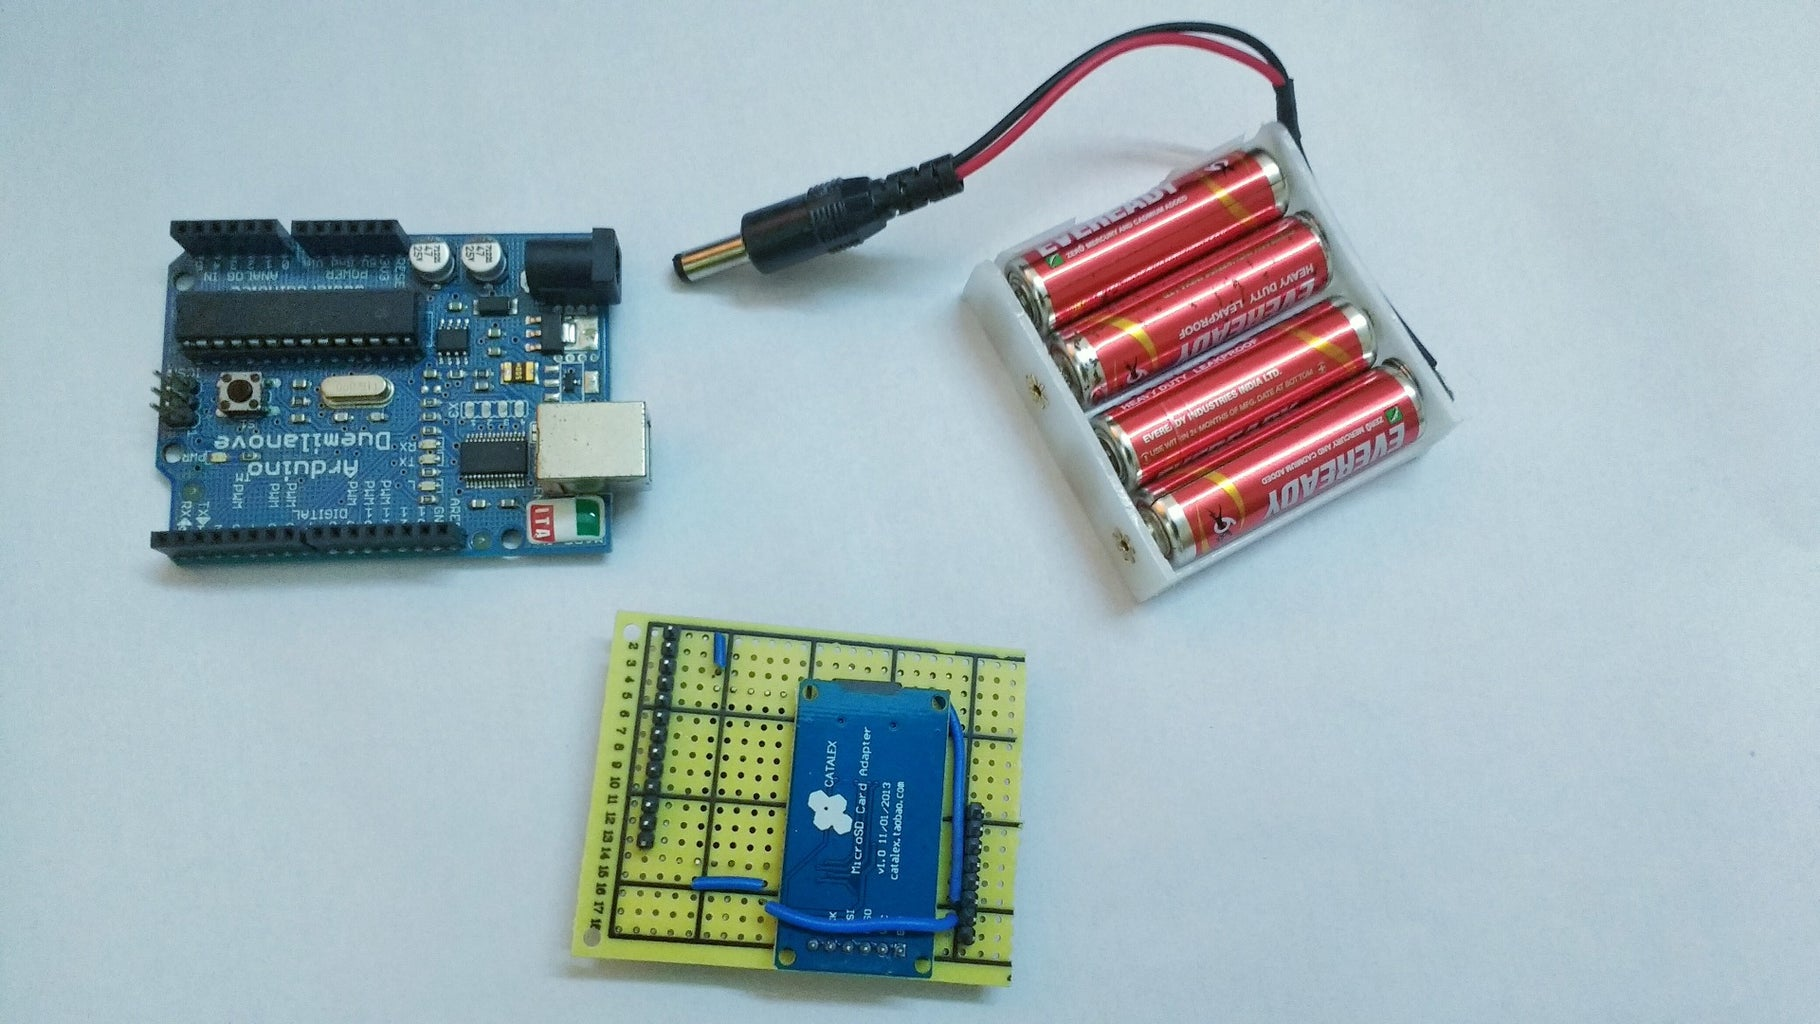 Design of Electronics to Accumulate Data (step 3): Putting Things Together